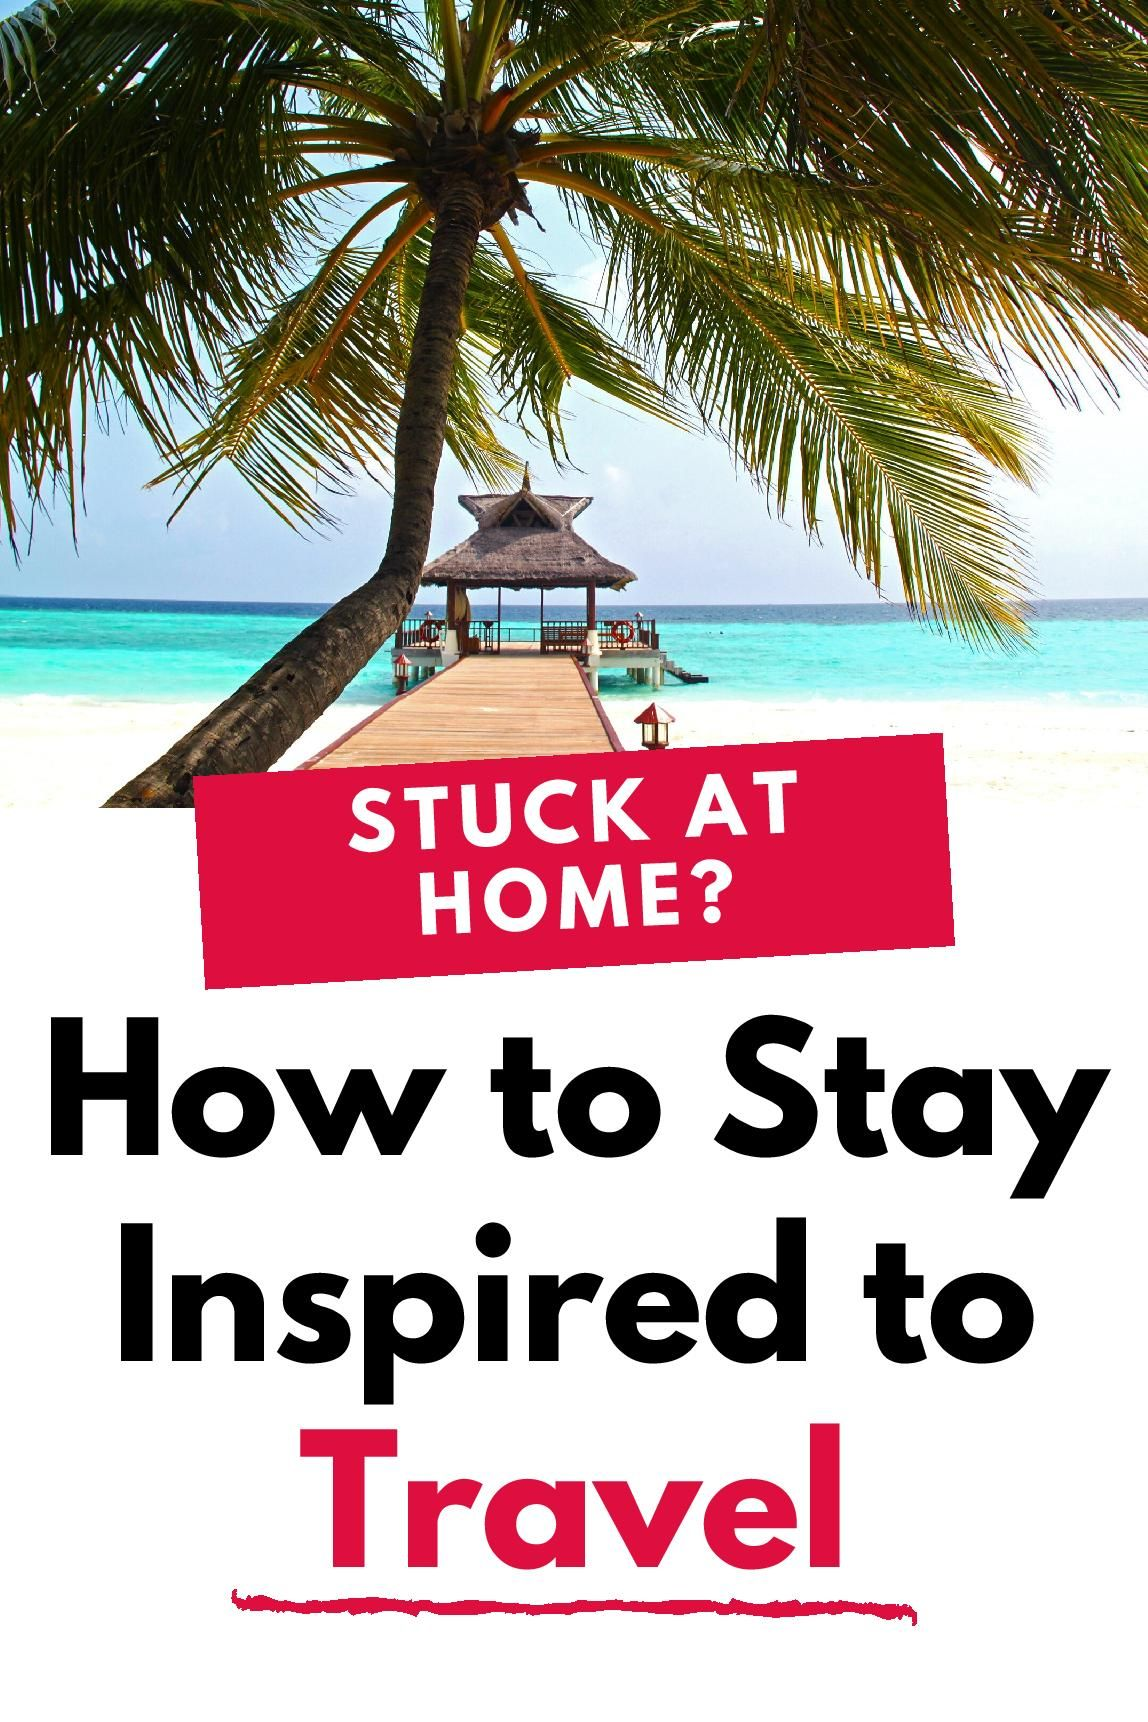 How to Stay Inspired to Travel During Self-Isolati